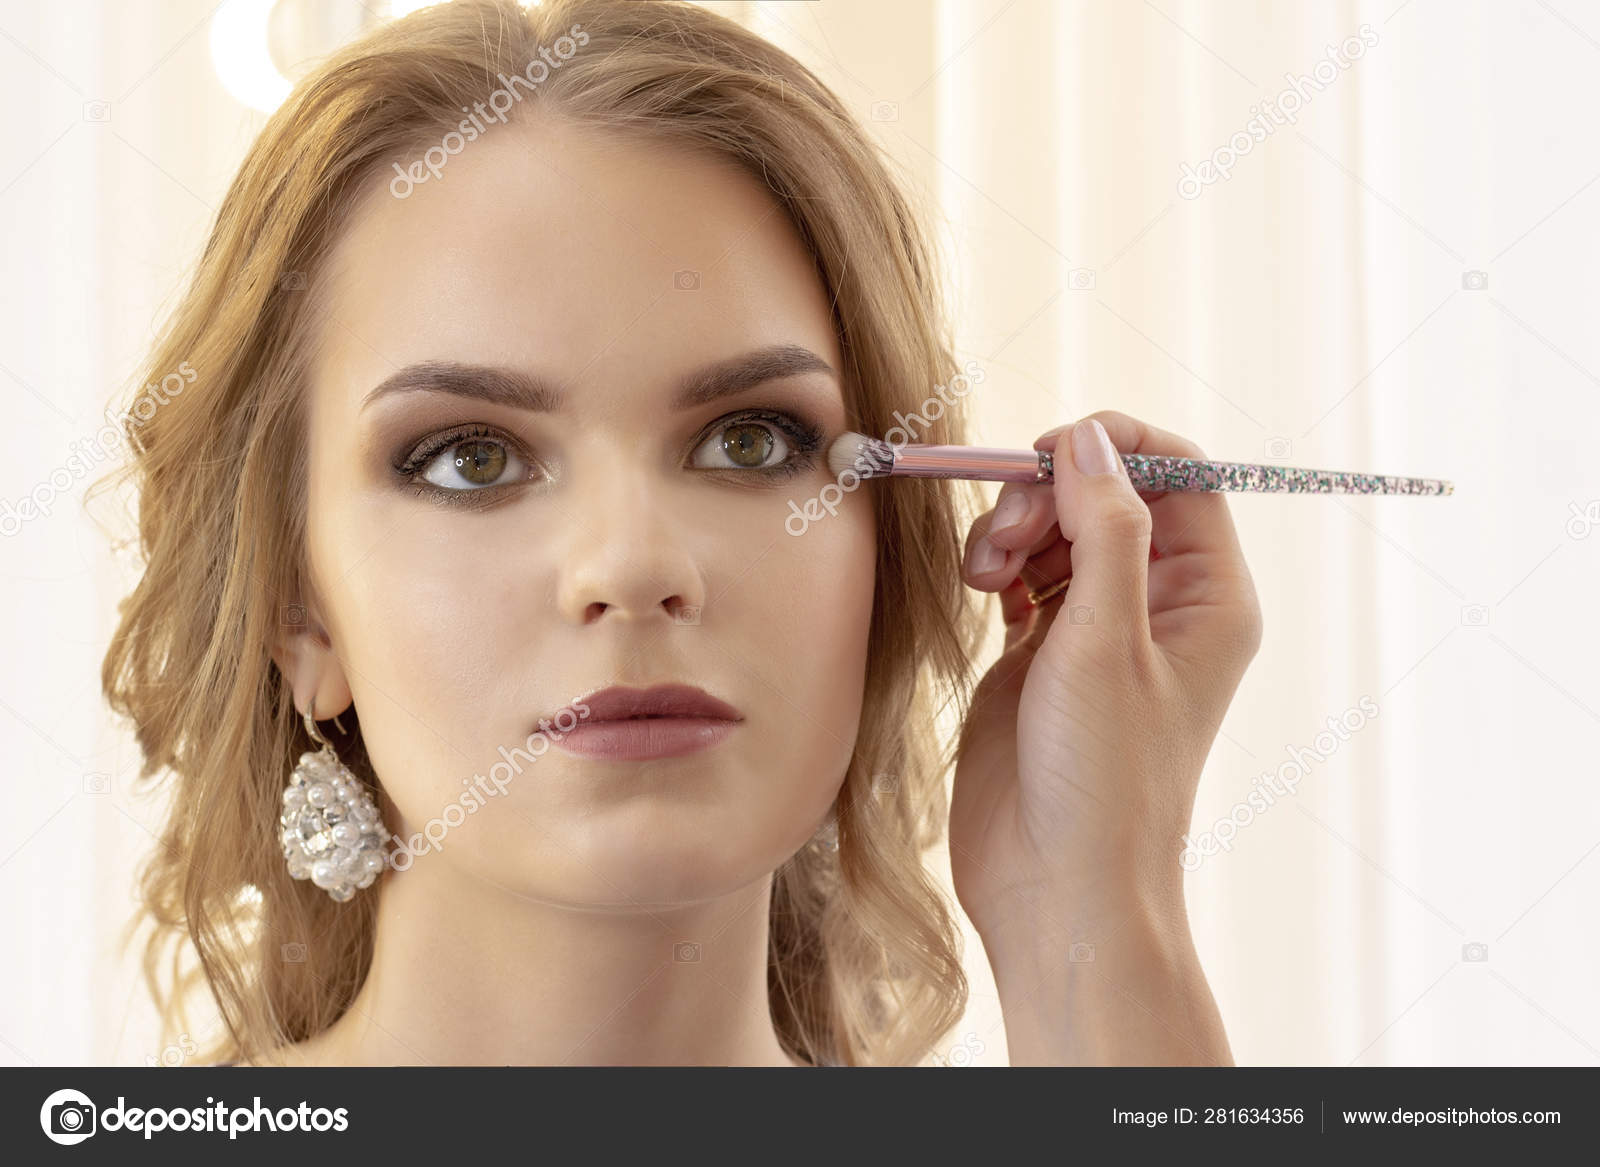 Makeup Artist Puts Makeup Girl Model Brush Applies Shadows